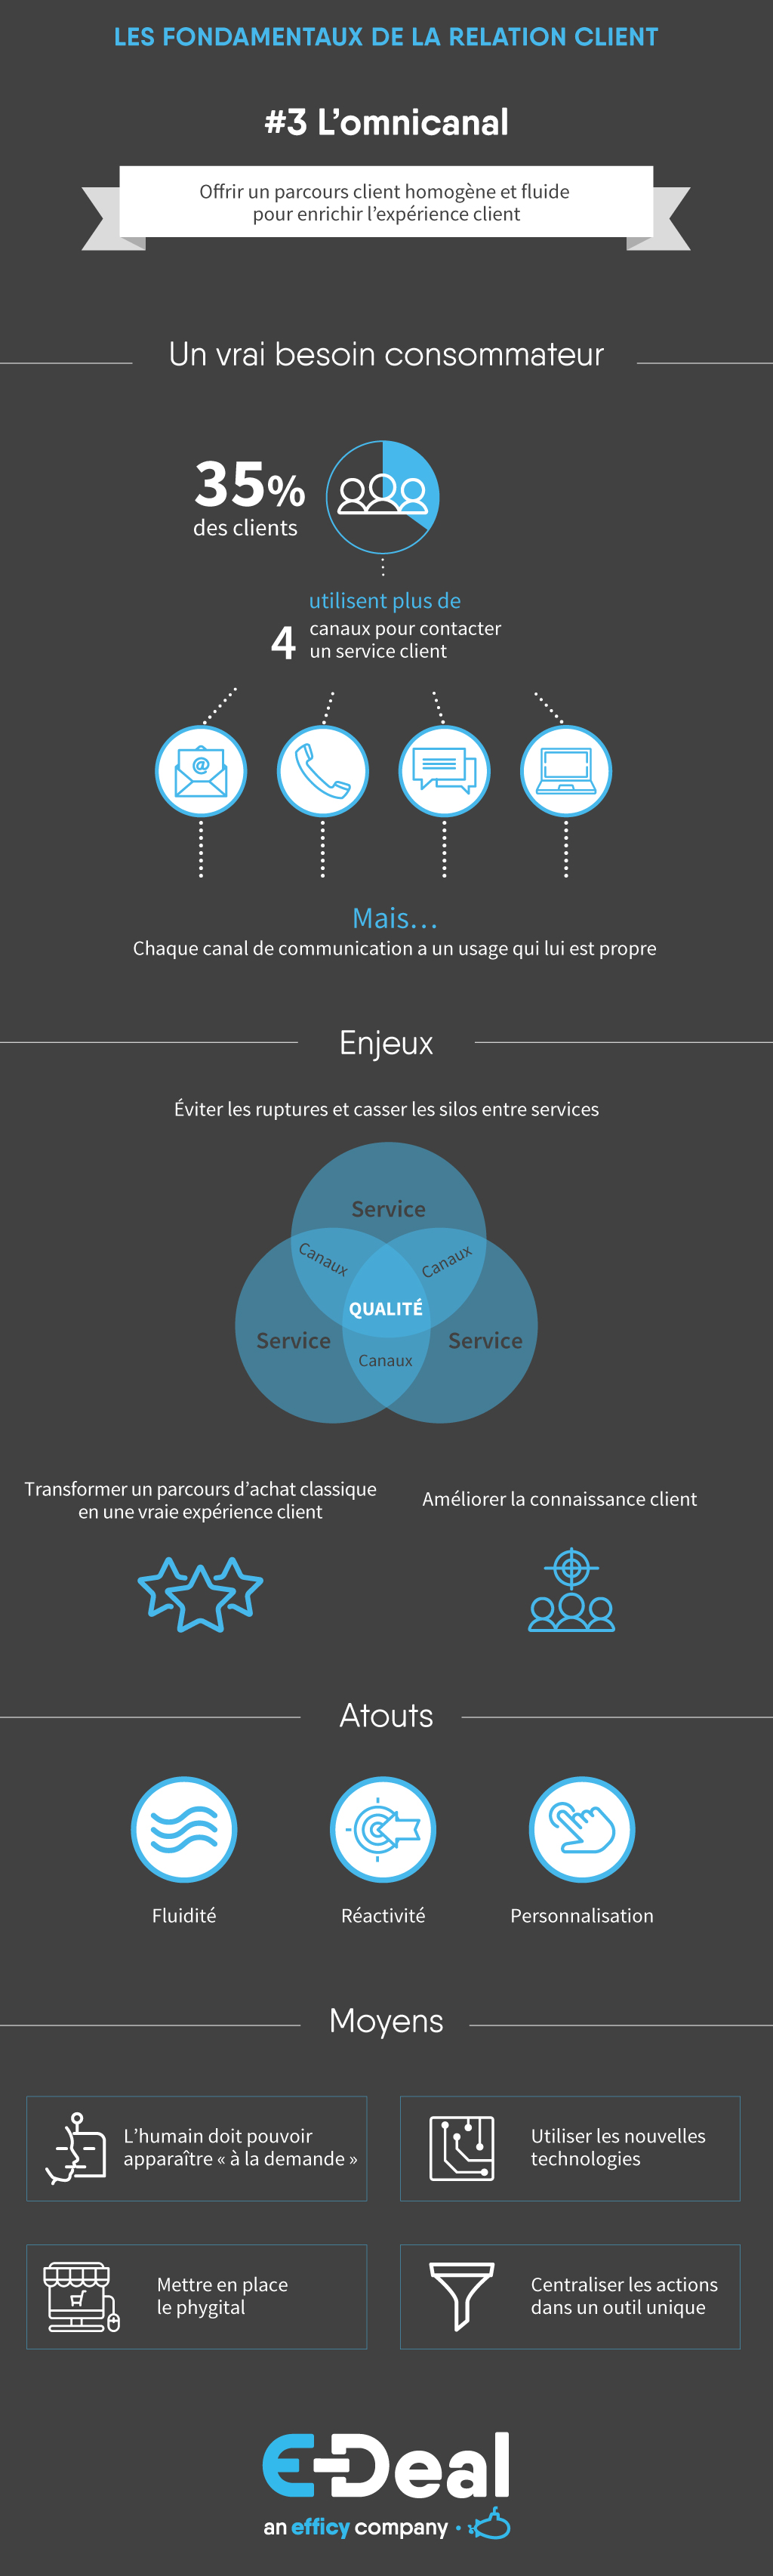 Infographie omnicanal - Relation Client